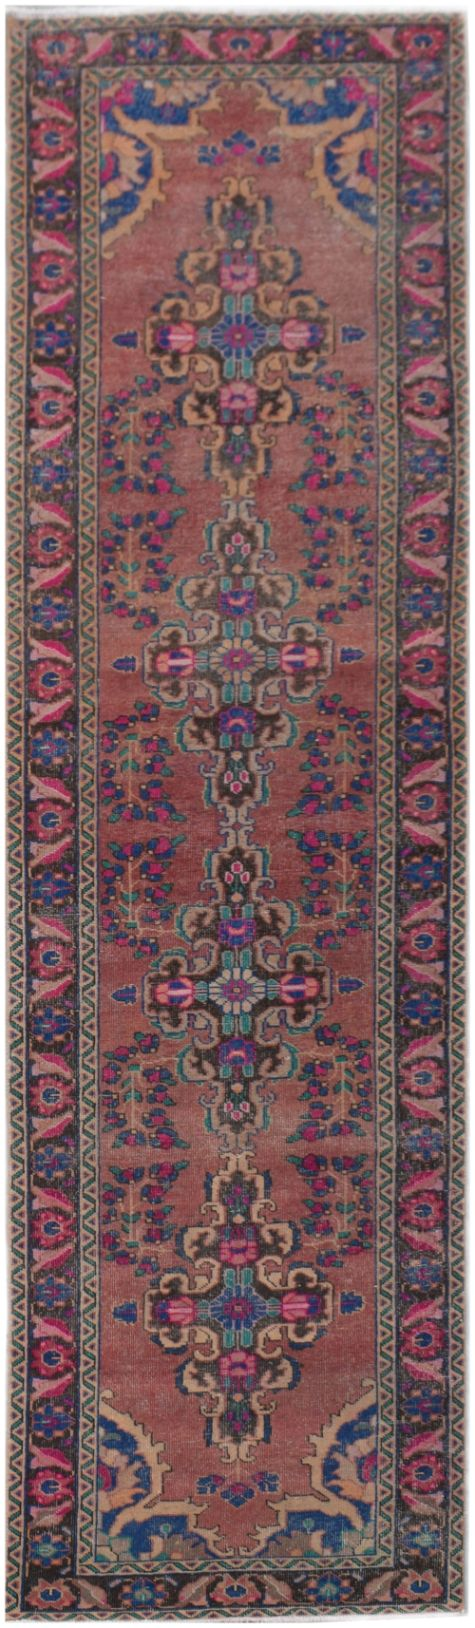 Handmade Tribal Abrash Collection Hallway Runner | 400 x 101 cm | 13'1